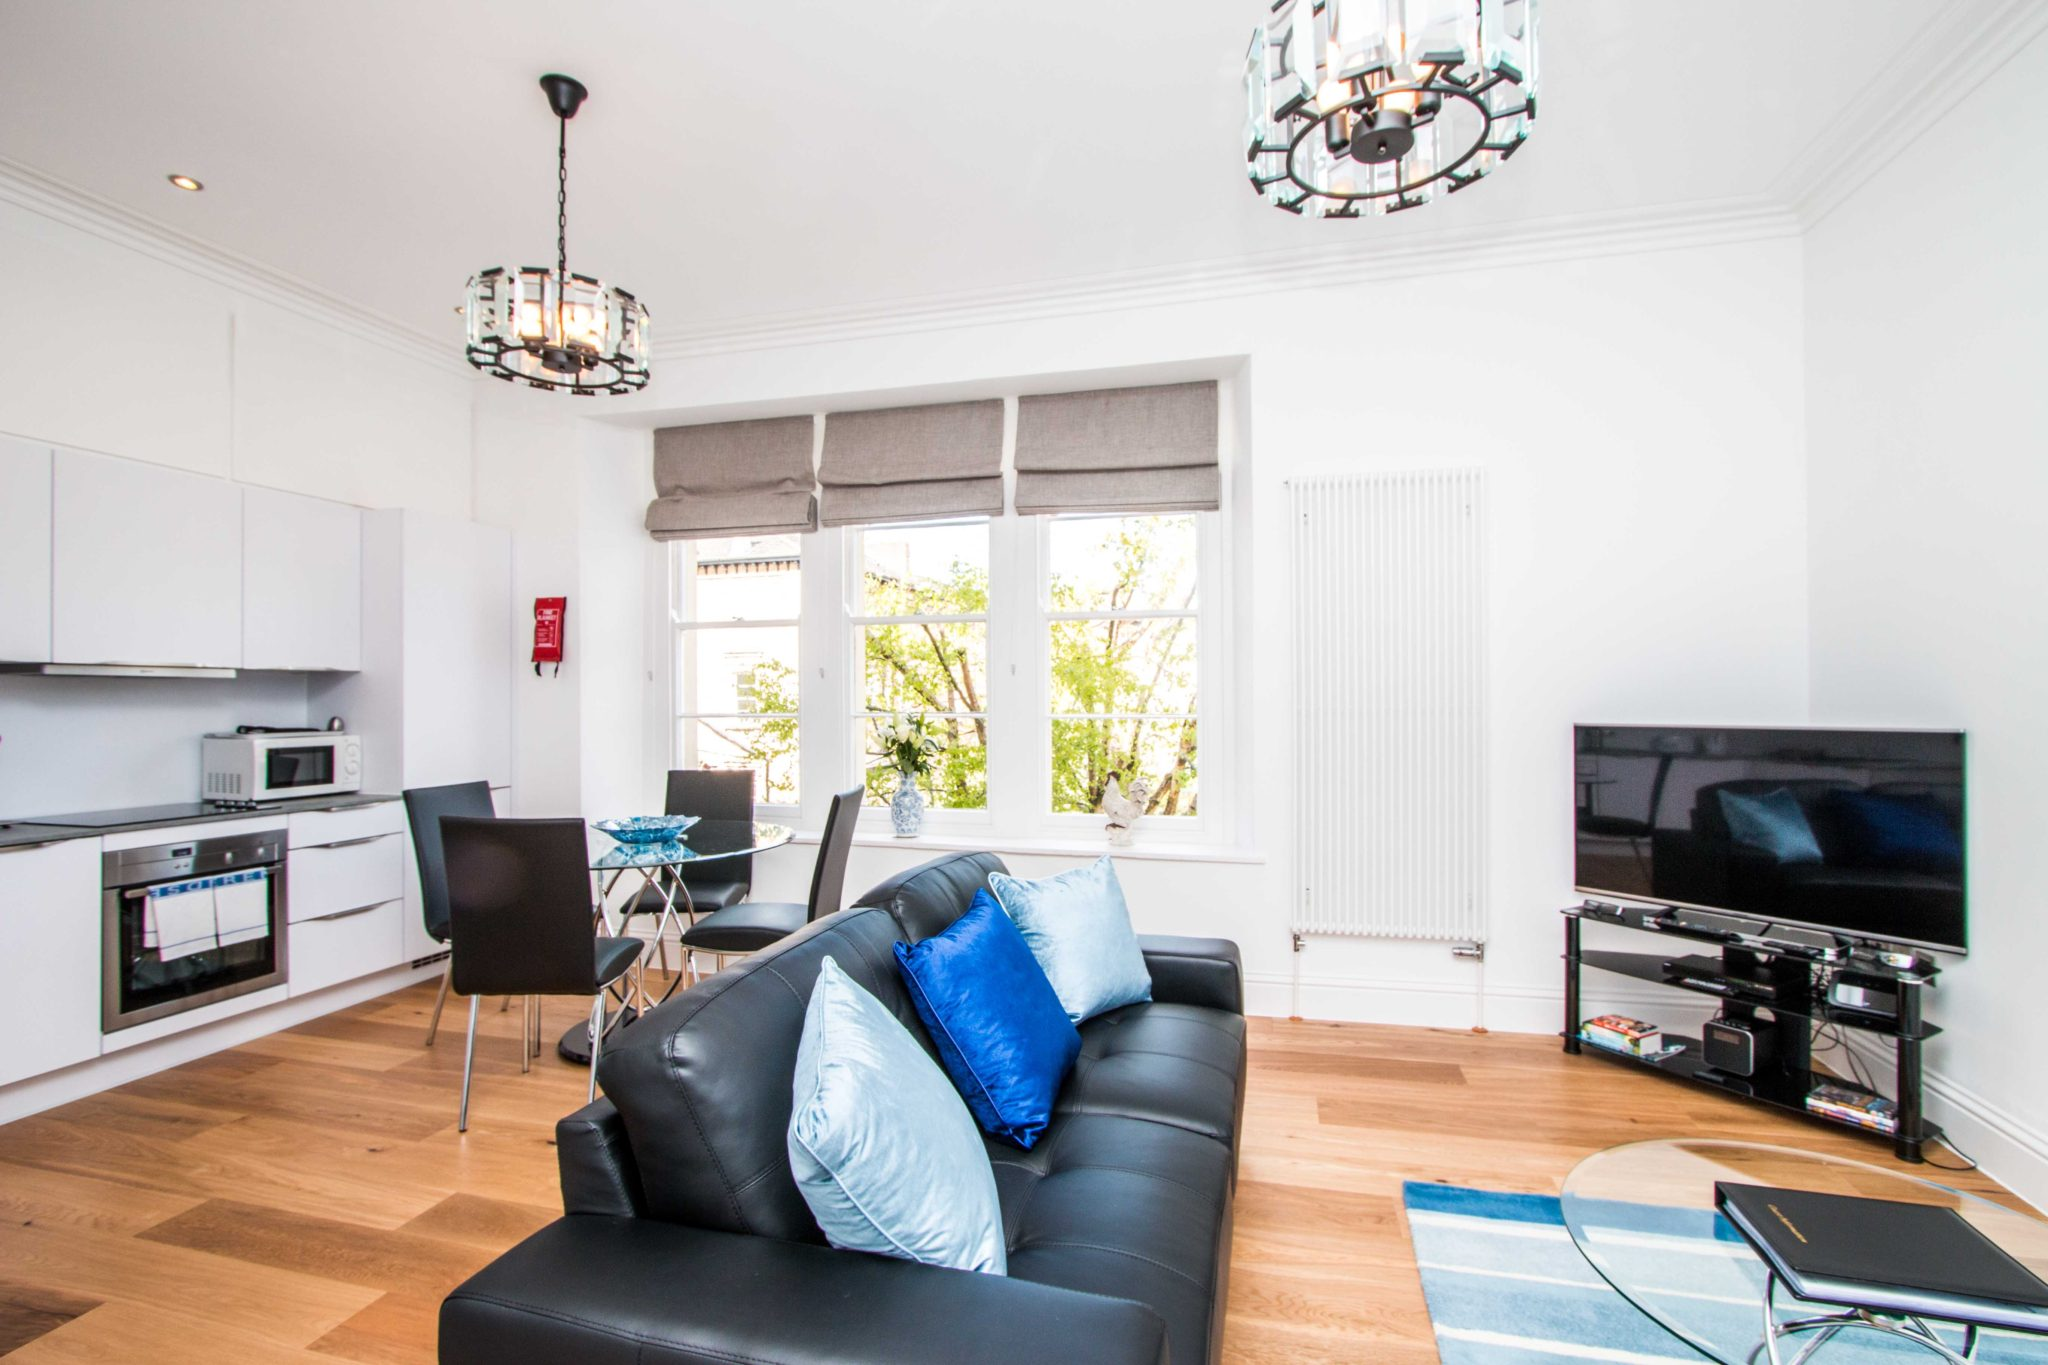 Serviced-Accommodation-Bristol-|Short-Let-Apartments|-Free-Wifi-|-Fully-equipped-Kitchen-&-Free-parking|-Urban-Stay